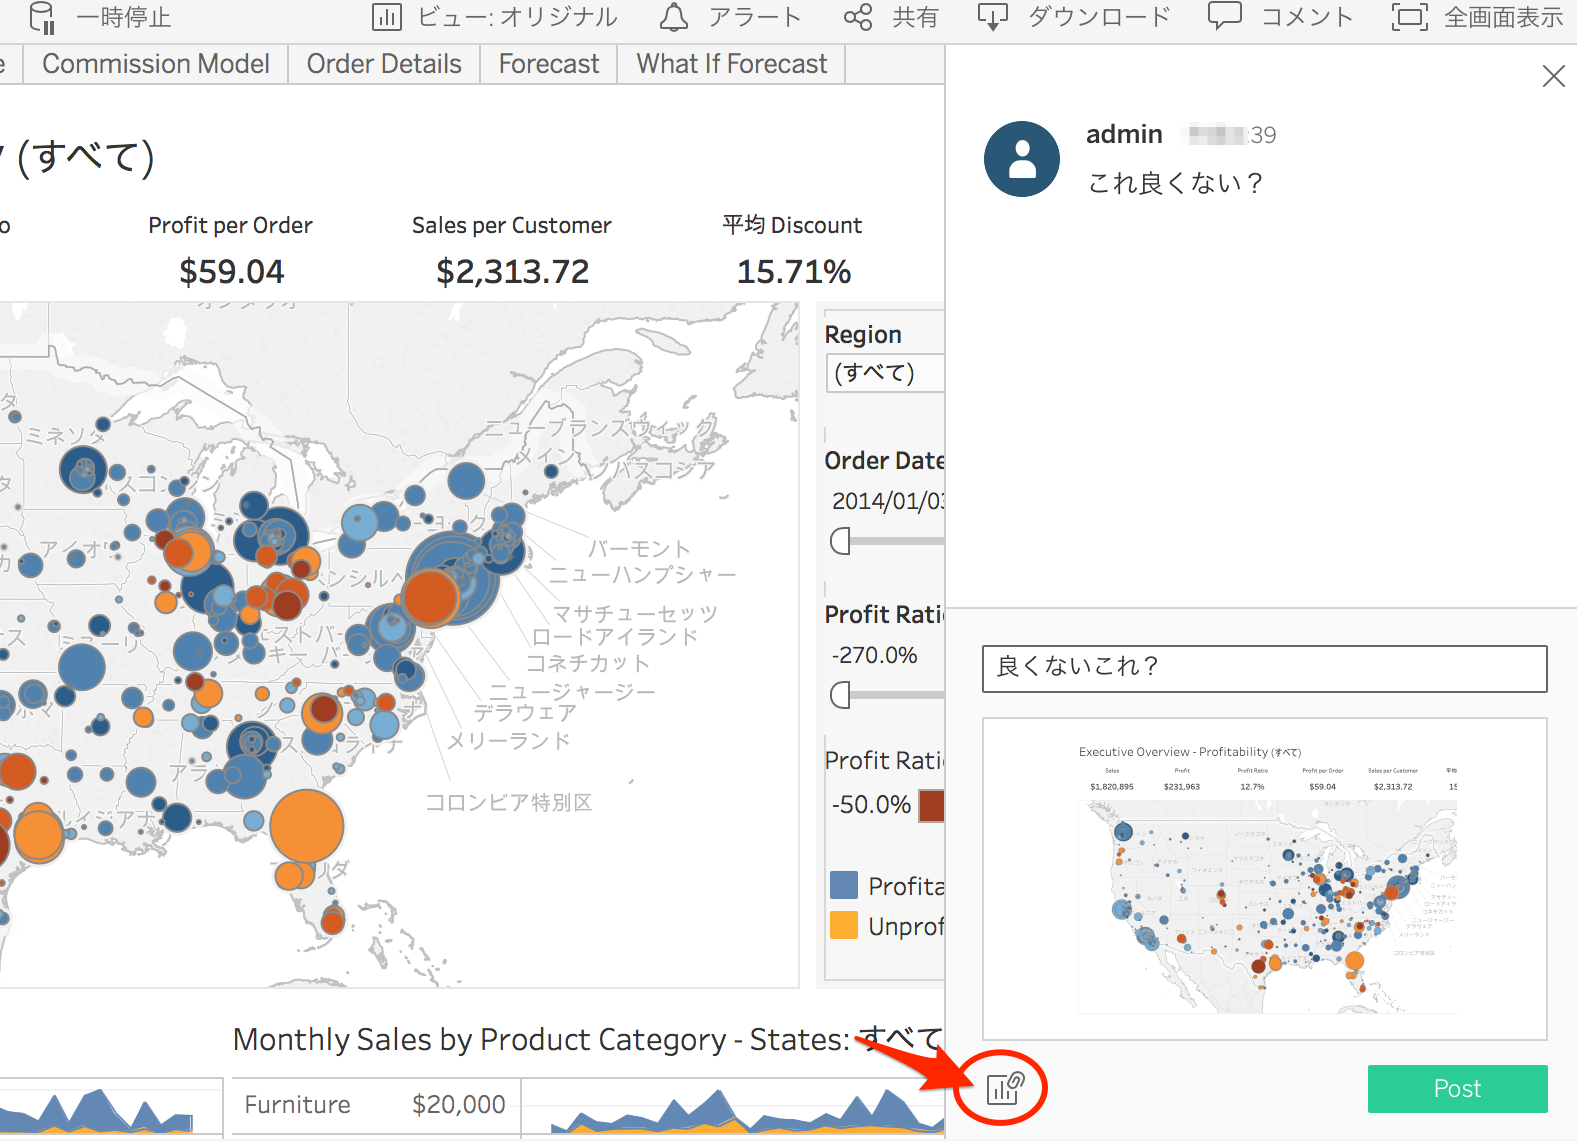 tableau104-new-features-comment-renewal_03